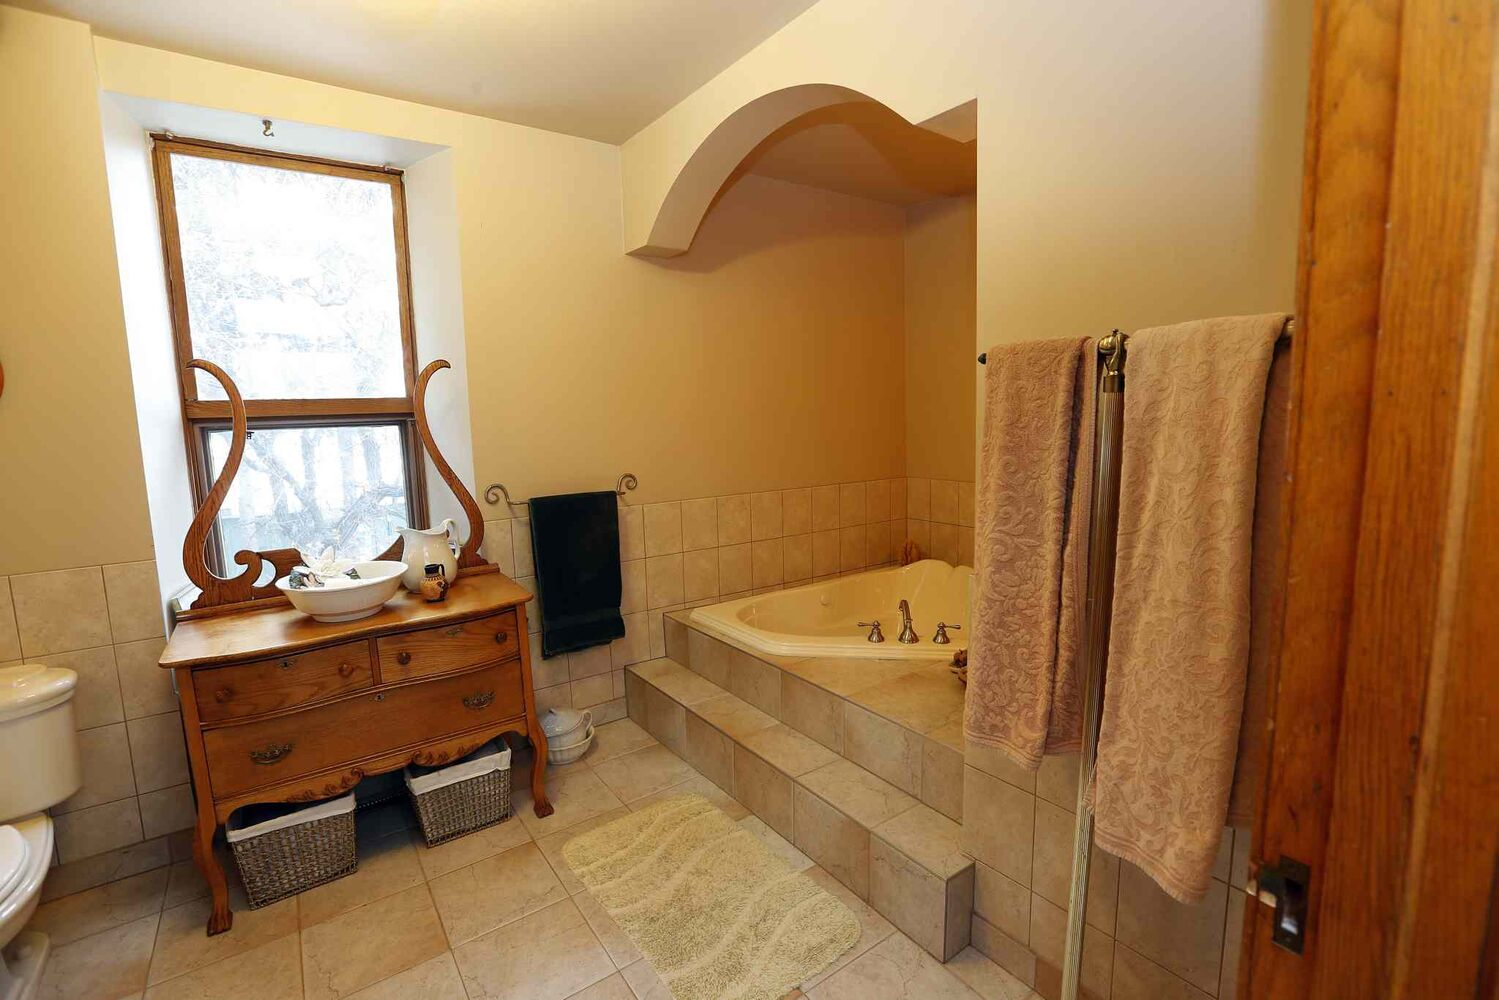 A custom bathroom was designed in keeping with the house's historic feel.